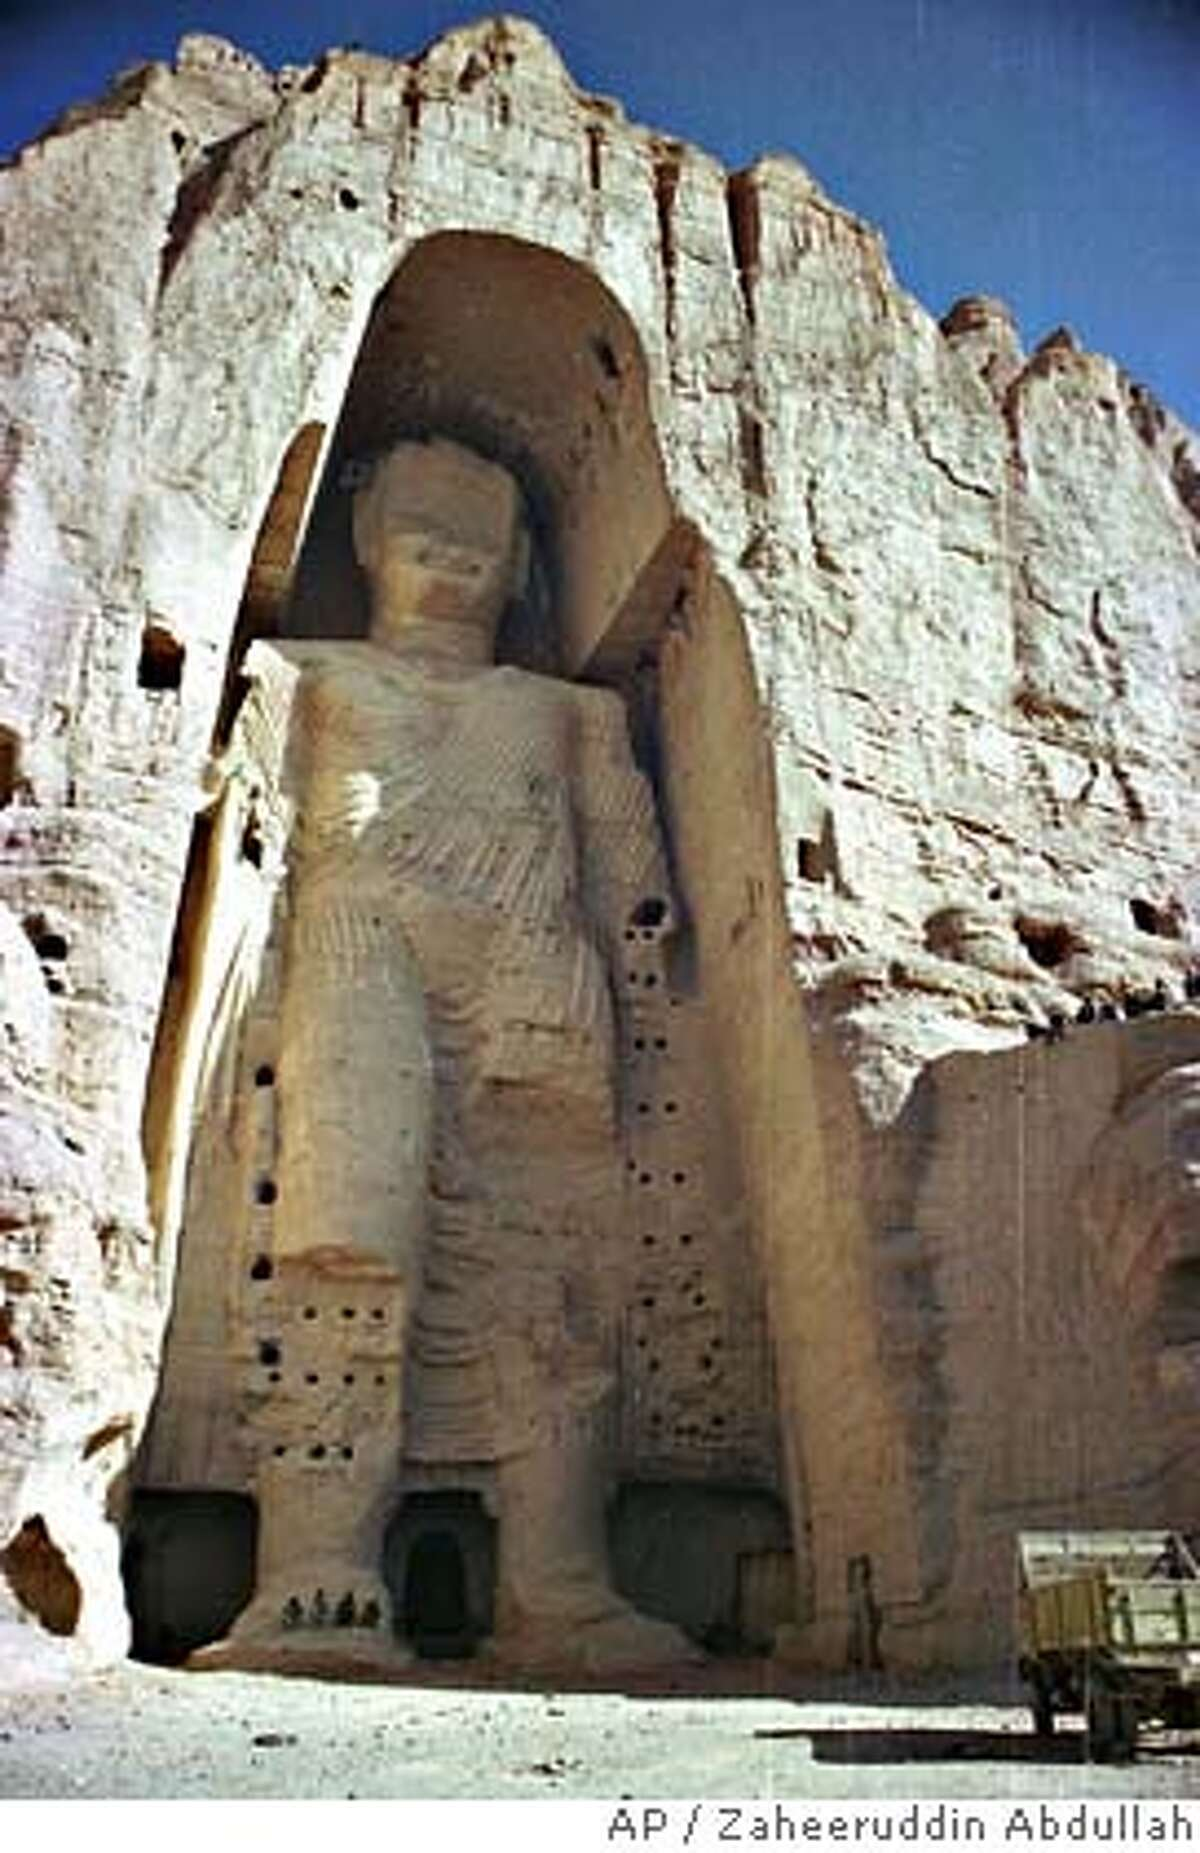 **FILE** The 53-meter (175-foot) tall, 2000-year-old Buddha statue located in Bamyan, about 150 kilometers (90 miles) west of the Afghan capital of Kabul, is shown in this undated file photo. In March 2001, Taliban militants disregarded worldwide protests and used dynamite and artillery to blow up the original fifth-century statues, including this statue, famed for their size and location along the ancient Silk Road linking Europe and Central Asia. The fundamentalist group considered the Buddhas idolatrous and anti-Muslim. (AP Photo/Zaheeruddin Abdullah, FILE) Ran on: 08-14-2005 Laser images of Buddha are set to be created by artist Hiro Yamagata, who will then project them across Bamiyan Valley, Afghanistan. UNDATED FILE PHOTO